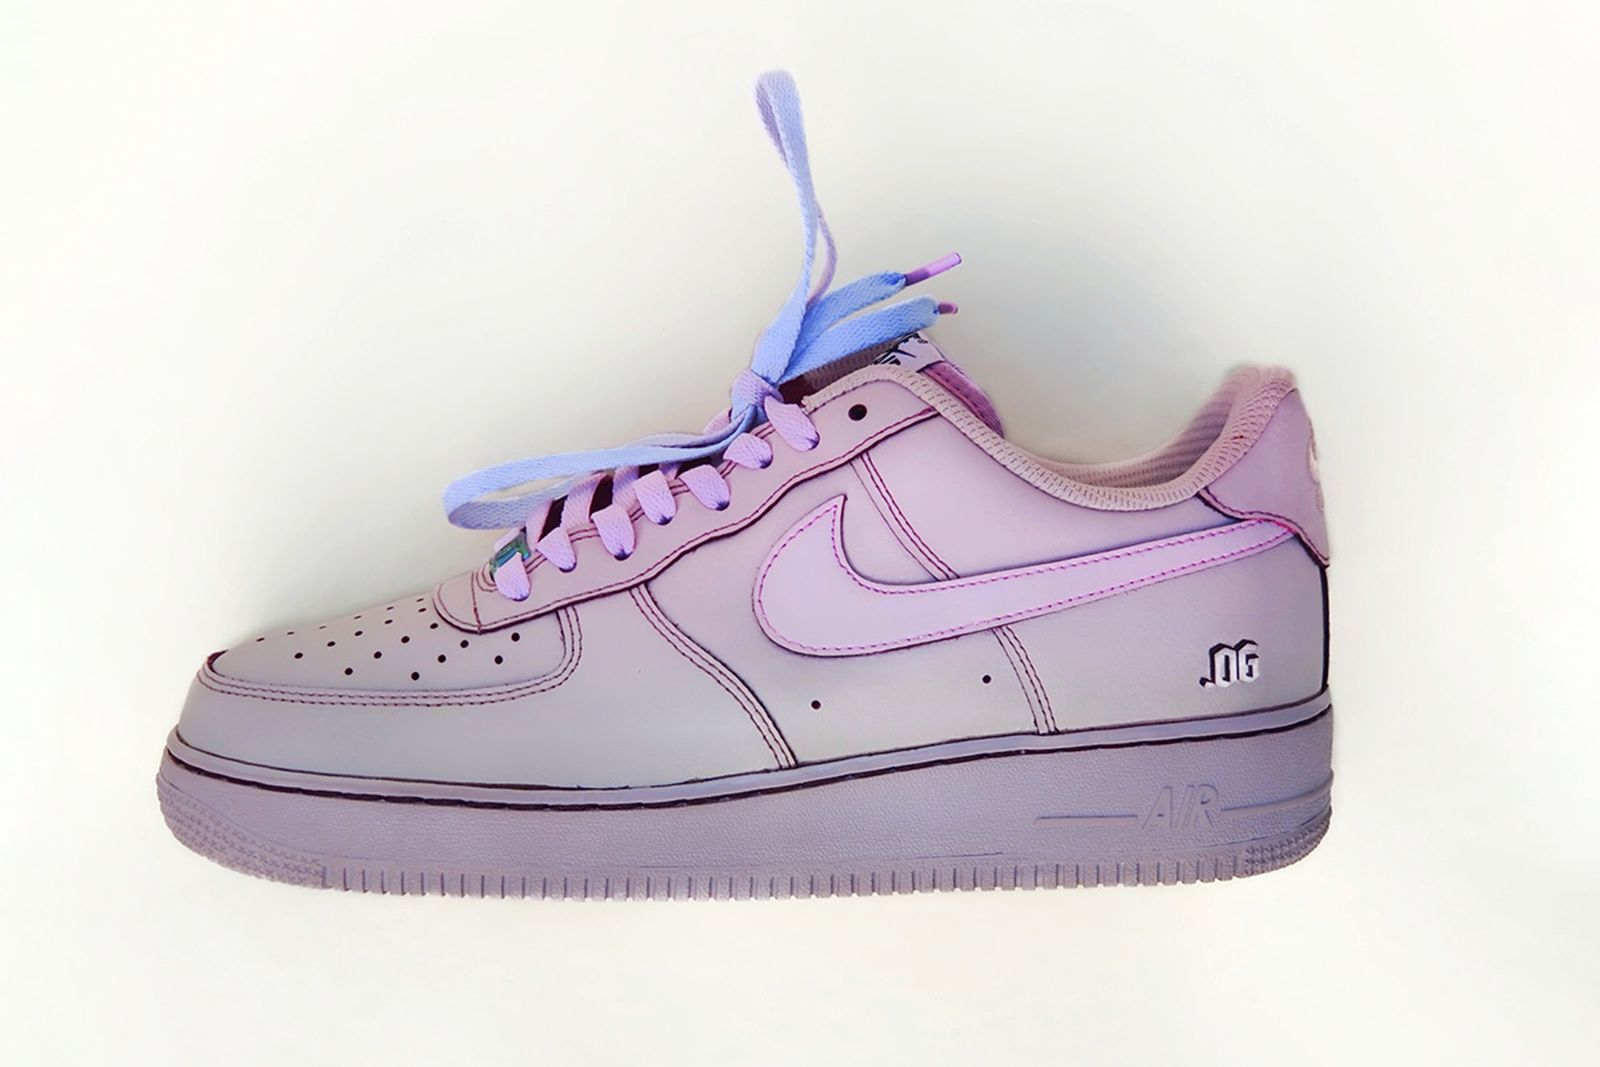 drake-nike-air-force-1-ovo-release-date-price-01